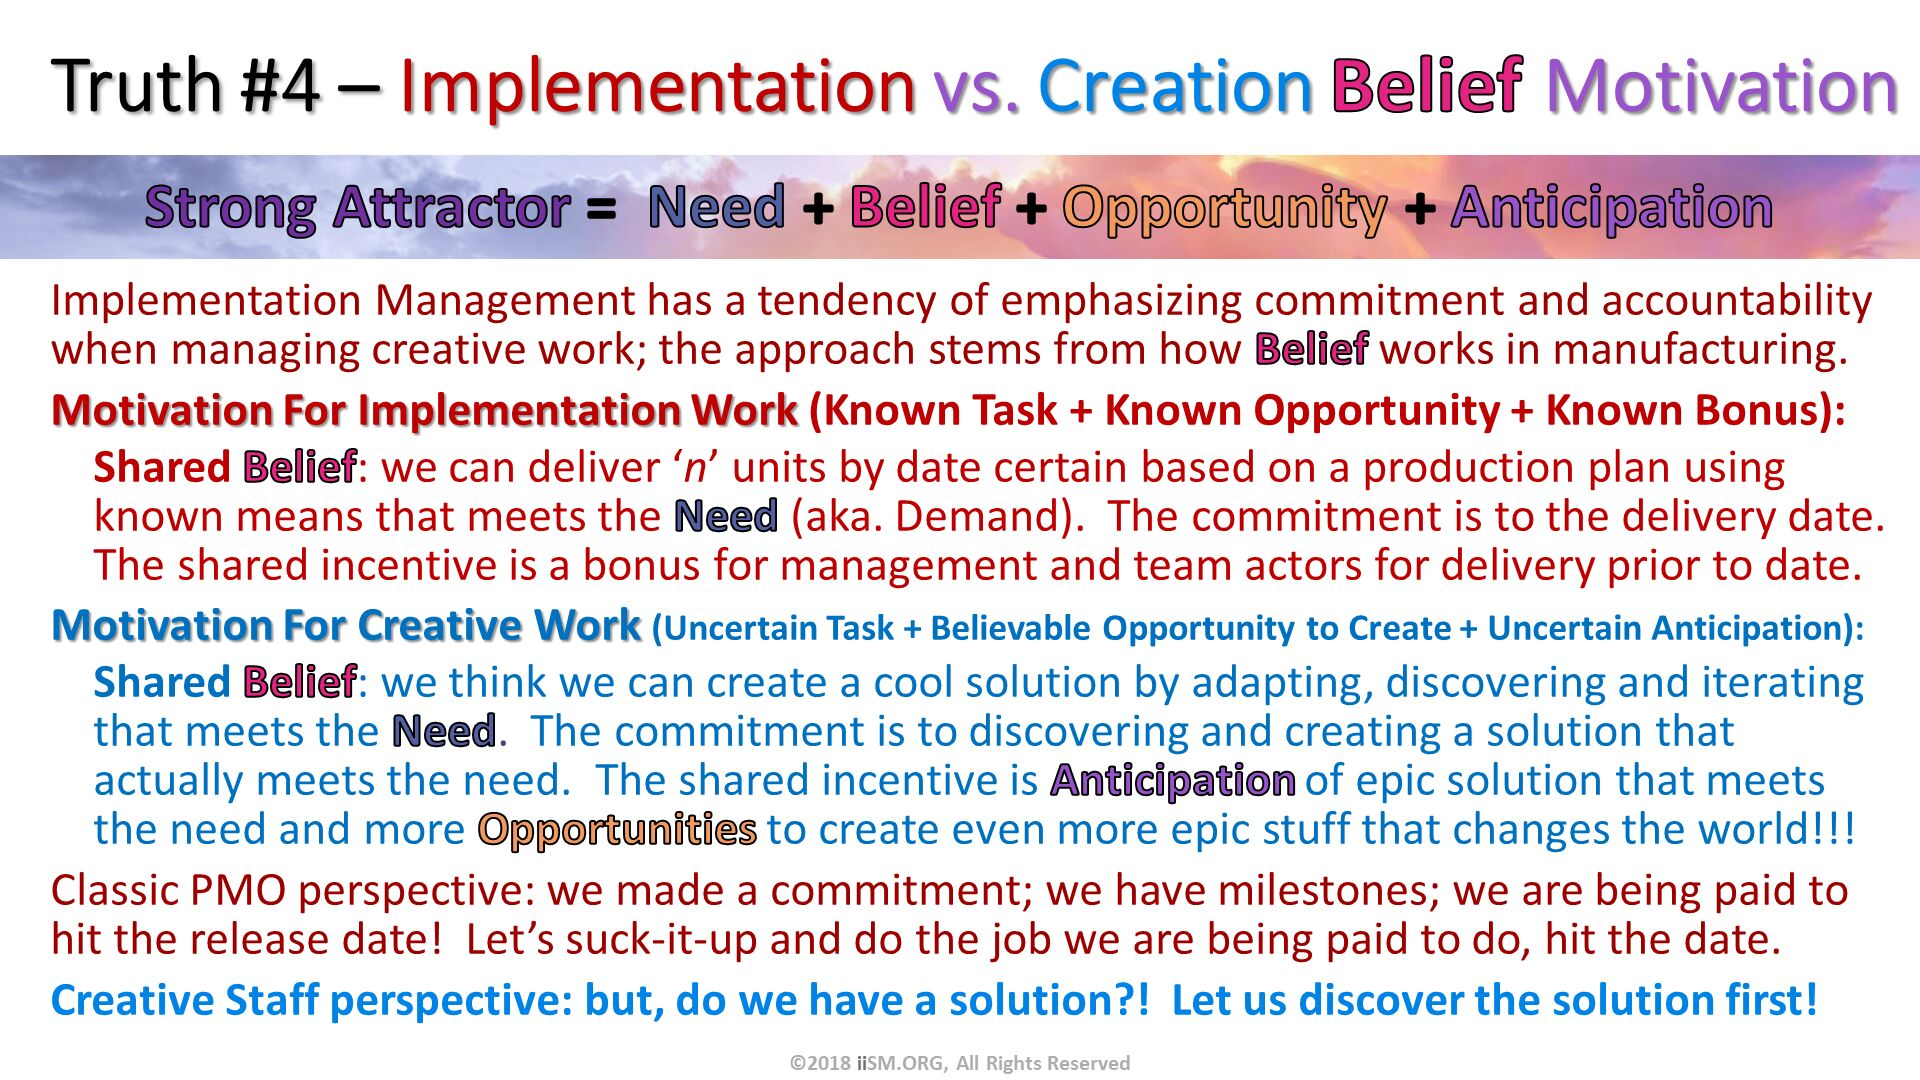 Truth #4 – Implementation vs. Creation Belief Motivation. Implementation Management has a tendency of emphasizing commitment and accountability when managing creative work; the approach stems from how Belief works in manufacturing. Motivation For Implementation Work (Known Task + Known Opportunity + Known Bonus): Shared Belief: we can deliver 'n' units by date certain based on a production plan using known means that meets the Need (aka. Demand).  The commitment is to the delivery date.  The shared incentive is a bonus for management and team actors for delivery prior to date. Motivation For Creative Work (Uncertain Task + Believable Opportunity to Create + Uncertain Anticipation): Shared Belief: we think we can create a cool solution by adapting, discovering and iterating that meets the Need.  The commitment is to discovering and creating a solution that actually meets the need.  The shared incentive is Anticipation of epic solution that meets the need and more Opportunities to create even more epic stuff that changes the world!!!  Classic PMO perspective: we made a commitment; we have milestones; we are being paid to hit the release date!  Let's suck-it-up and do the job we are being paid to do, hit the date.   Creative Staff perspective: but, do we have a solution?!  Let us discover the solution first!. ©2018 iiSM.ORG, All Rights Reserved.